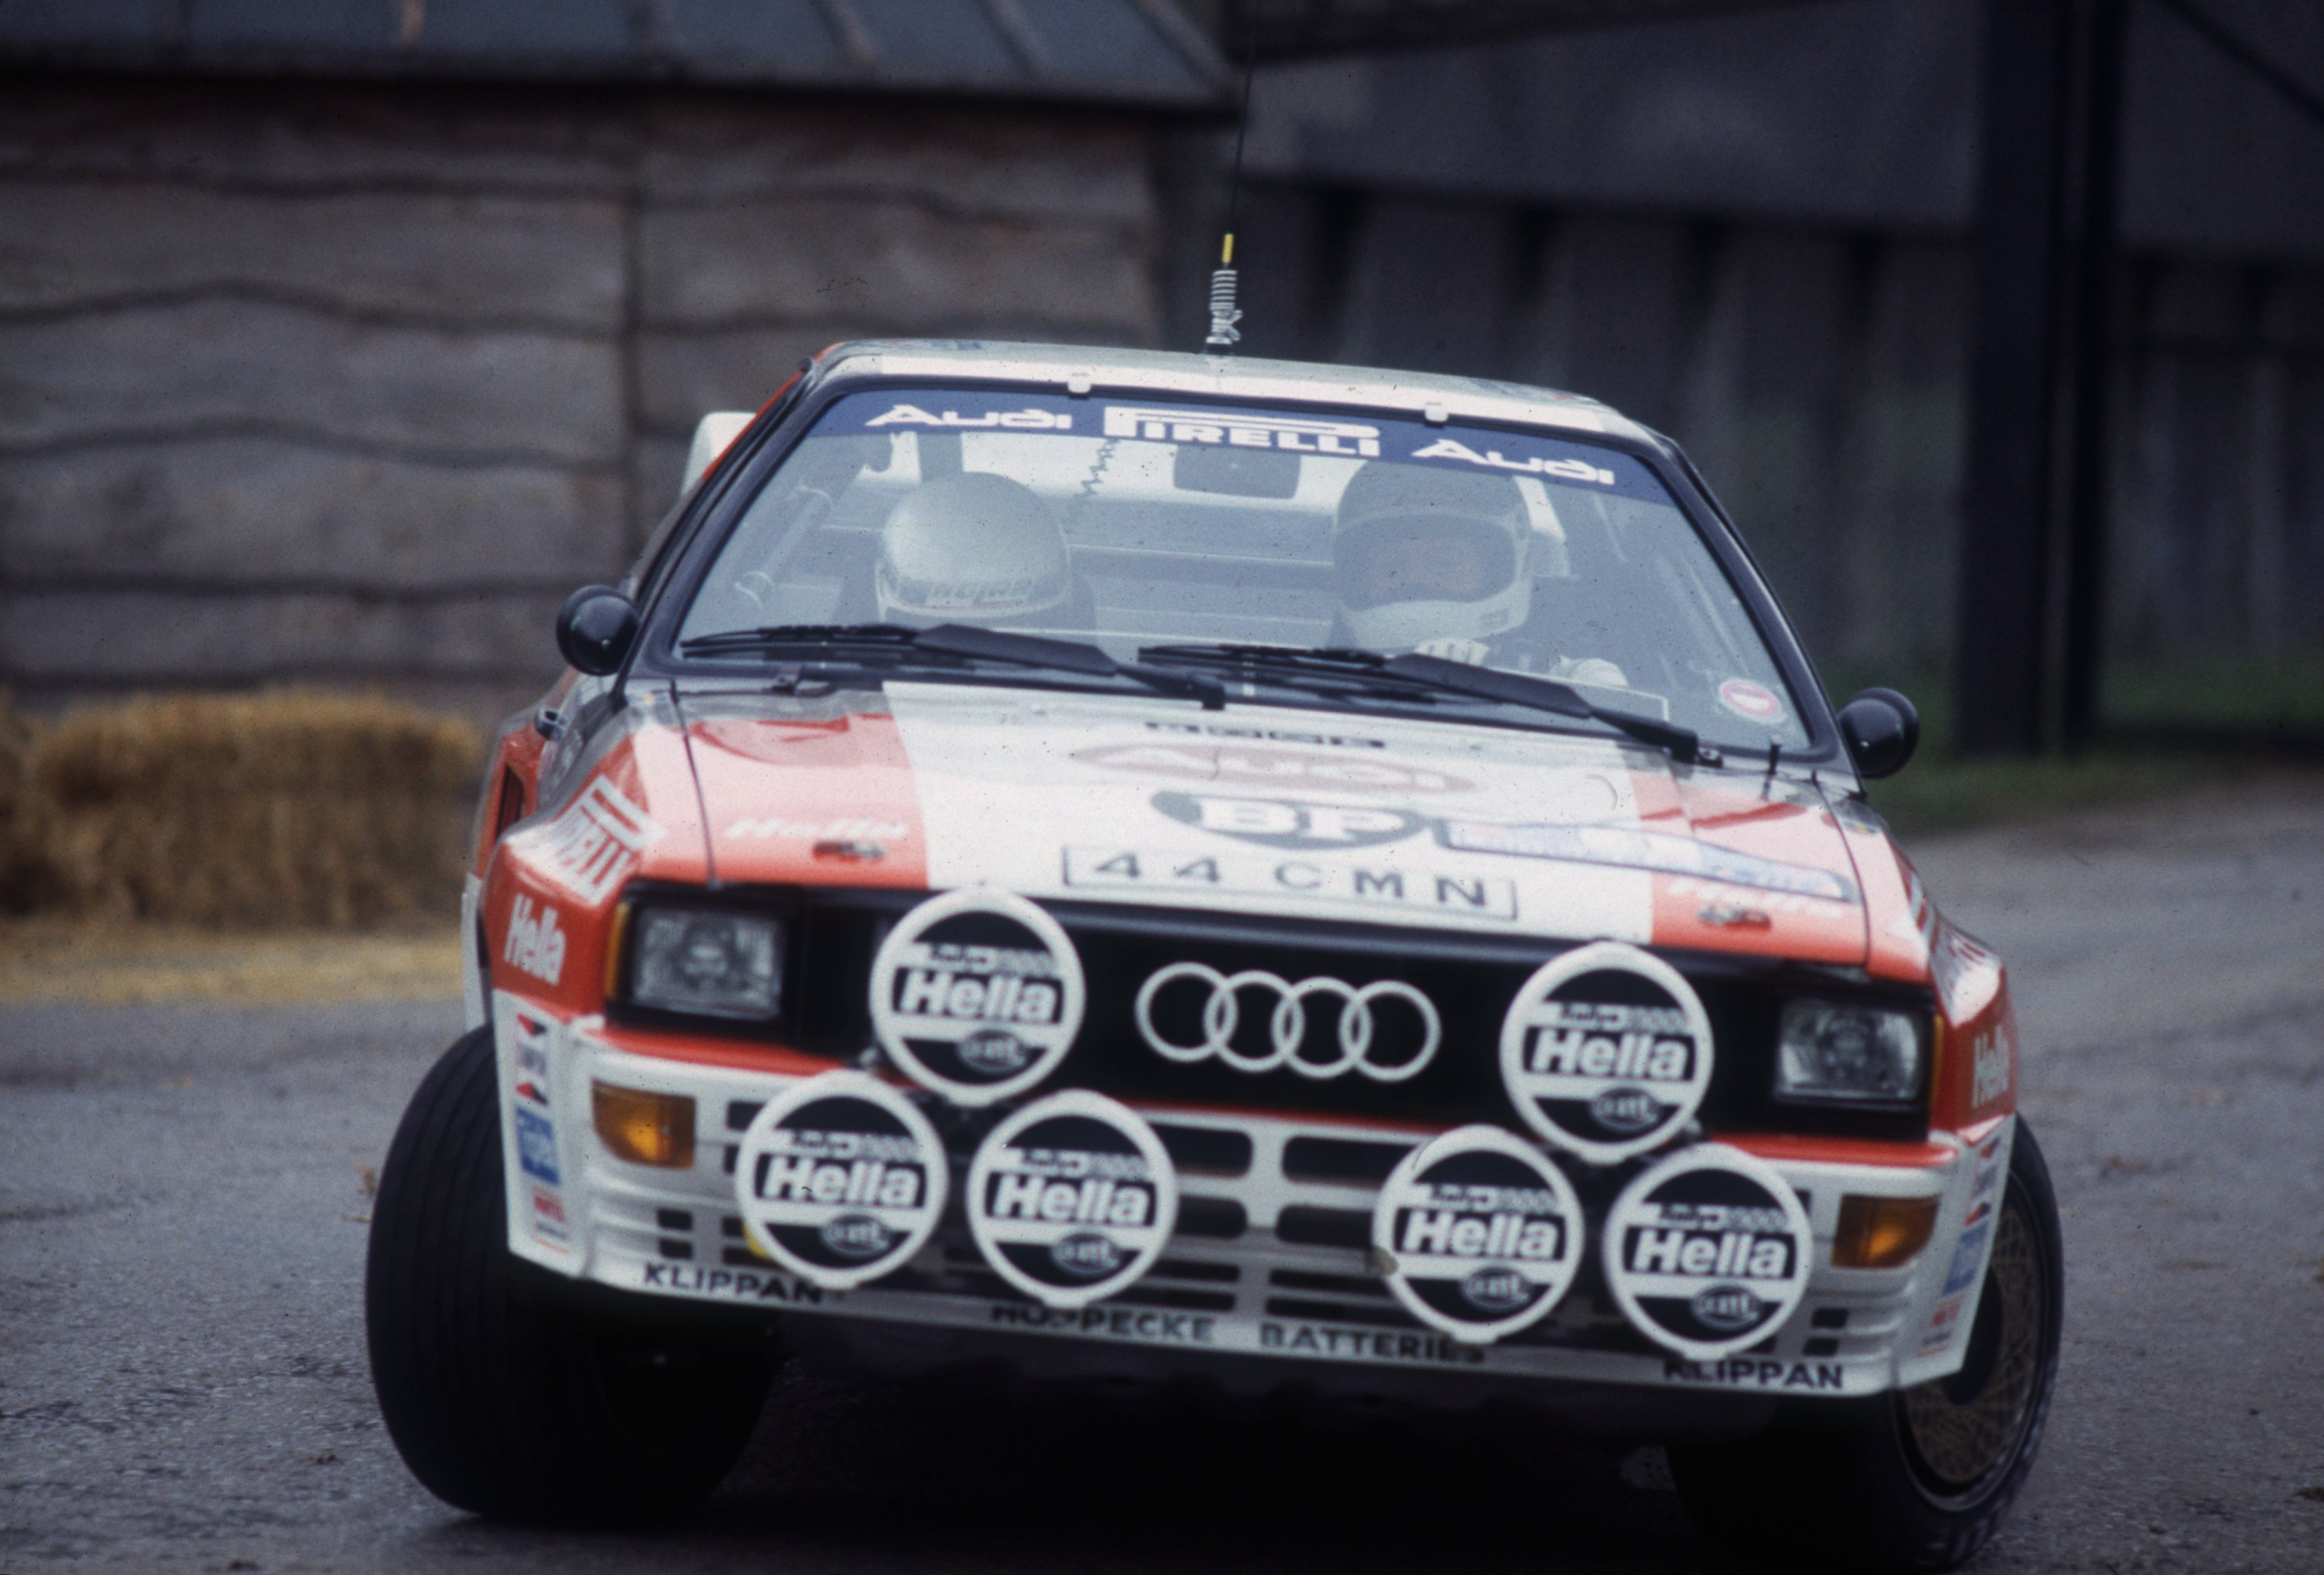 The Best Rally Cars Of All Time Bleacher Report Latest News - Car rally near me